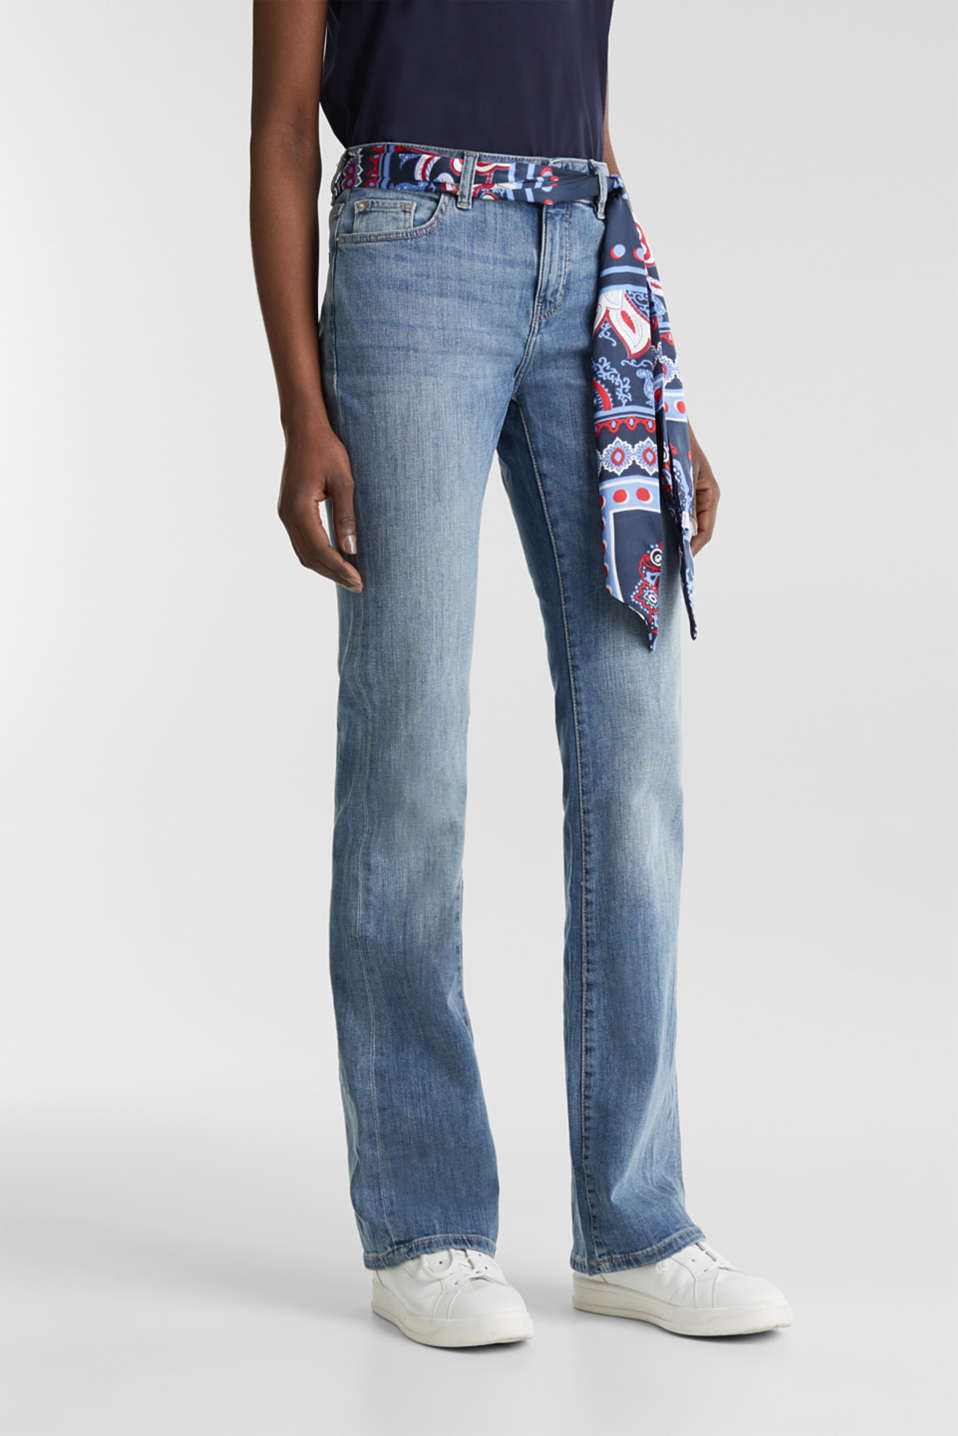 Jeans with a bandana tie-around belt, BLUE MEDIUM WASH, detail image number 6